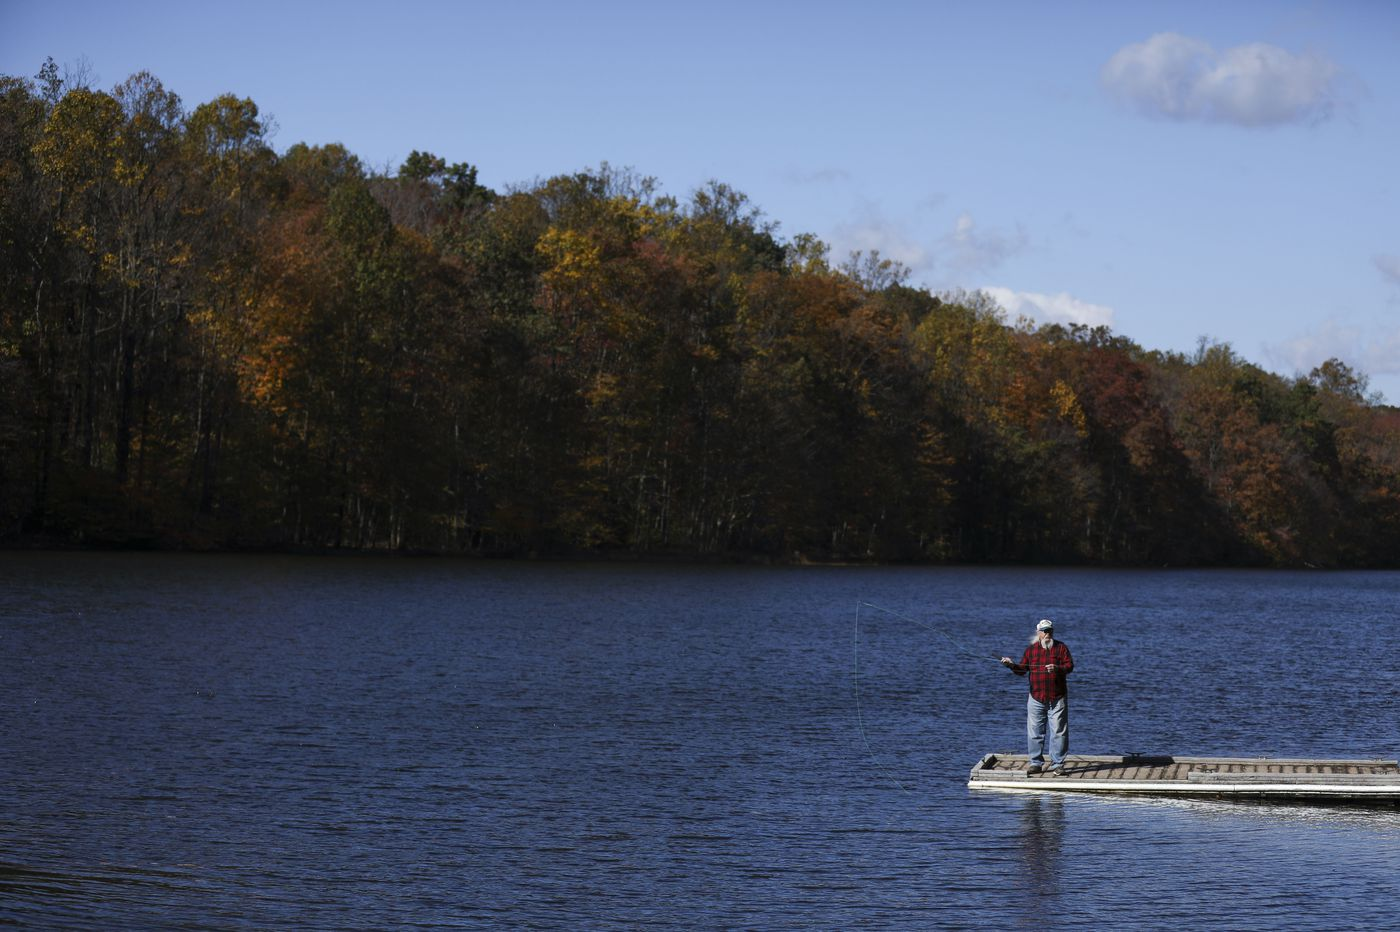 Poconos fall foliage is hitting its peak, to the relief of businesses hurting from COVID-19 restrictions